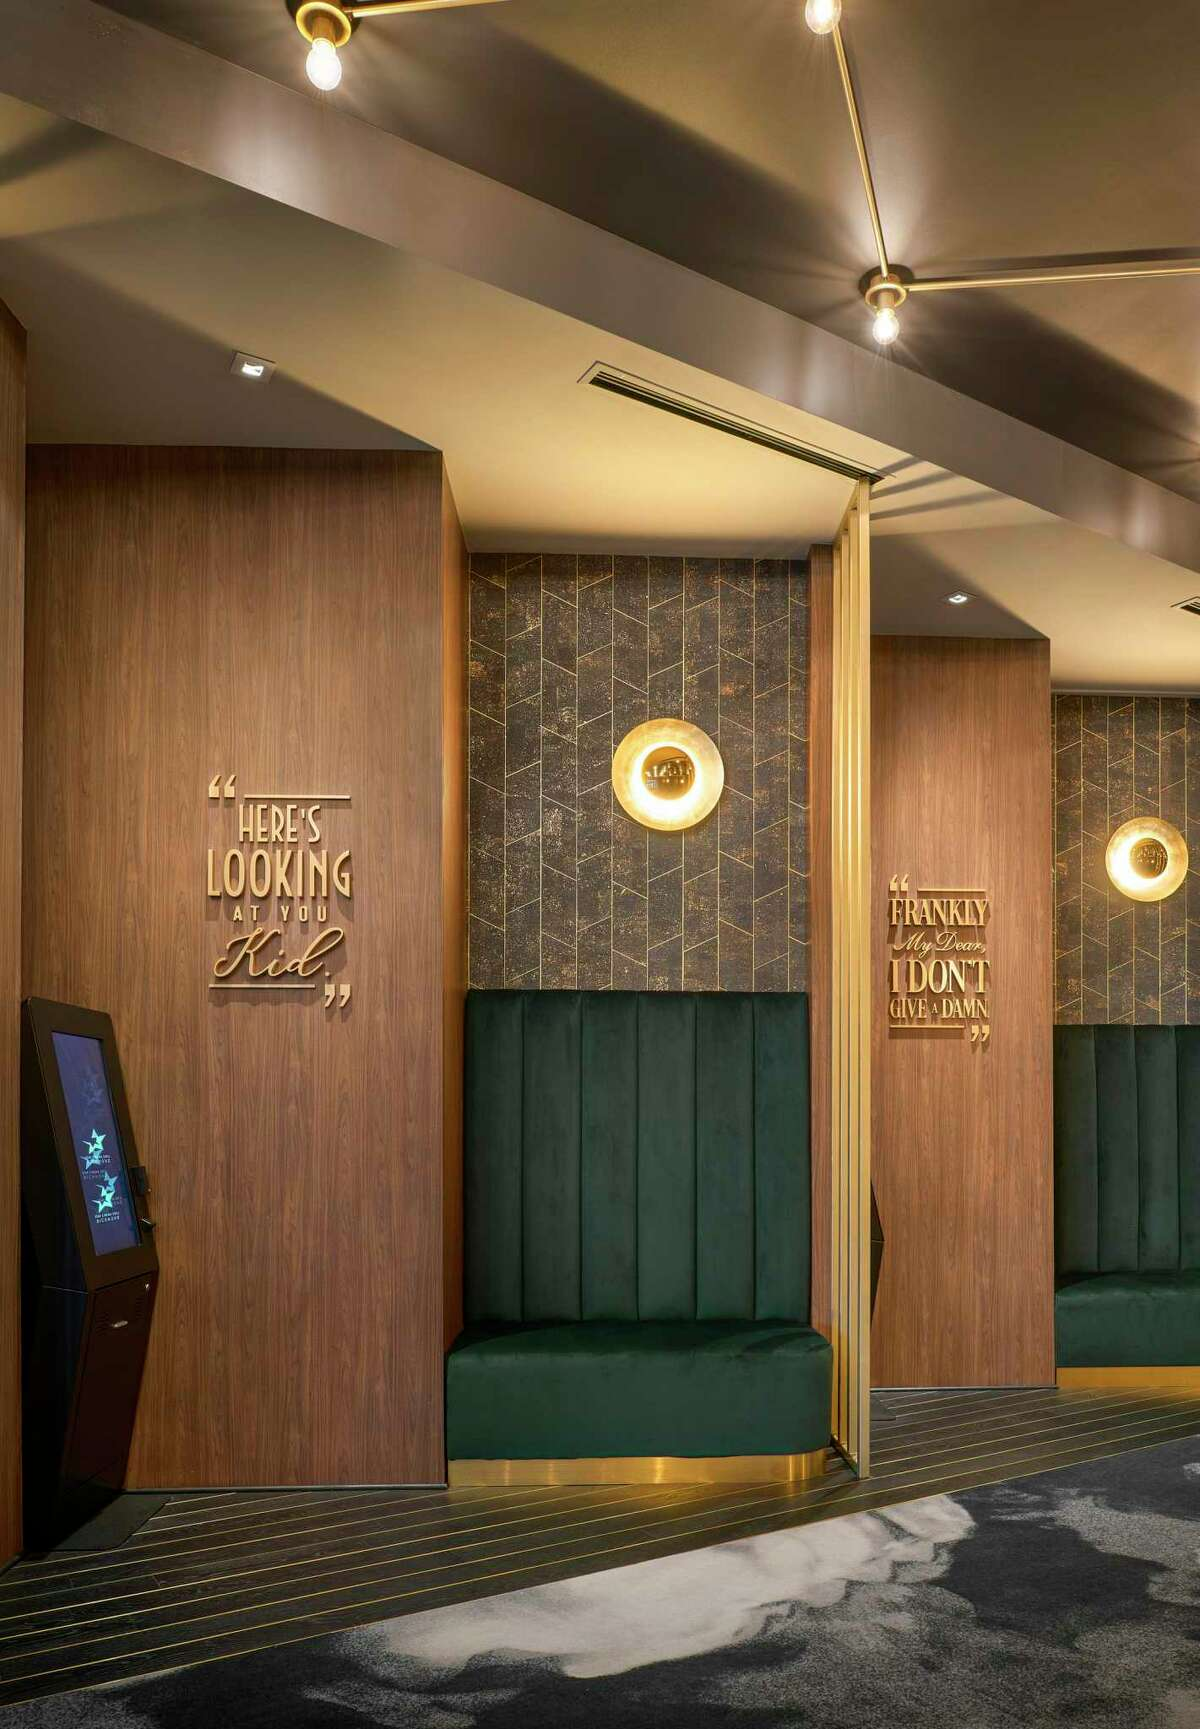 Star Cinema Grill will give its Baybrook Mall location an Old Hollywood ambiance using a palette of green and gray with marble sprinkled throughout. The theater opened four years ago.